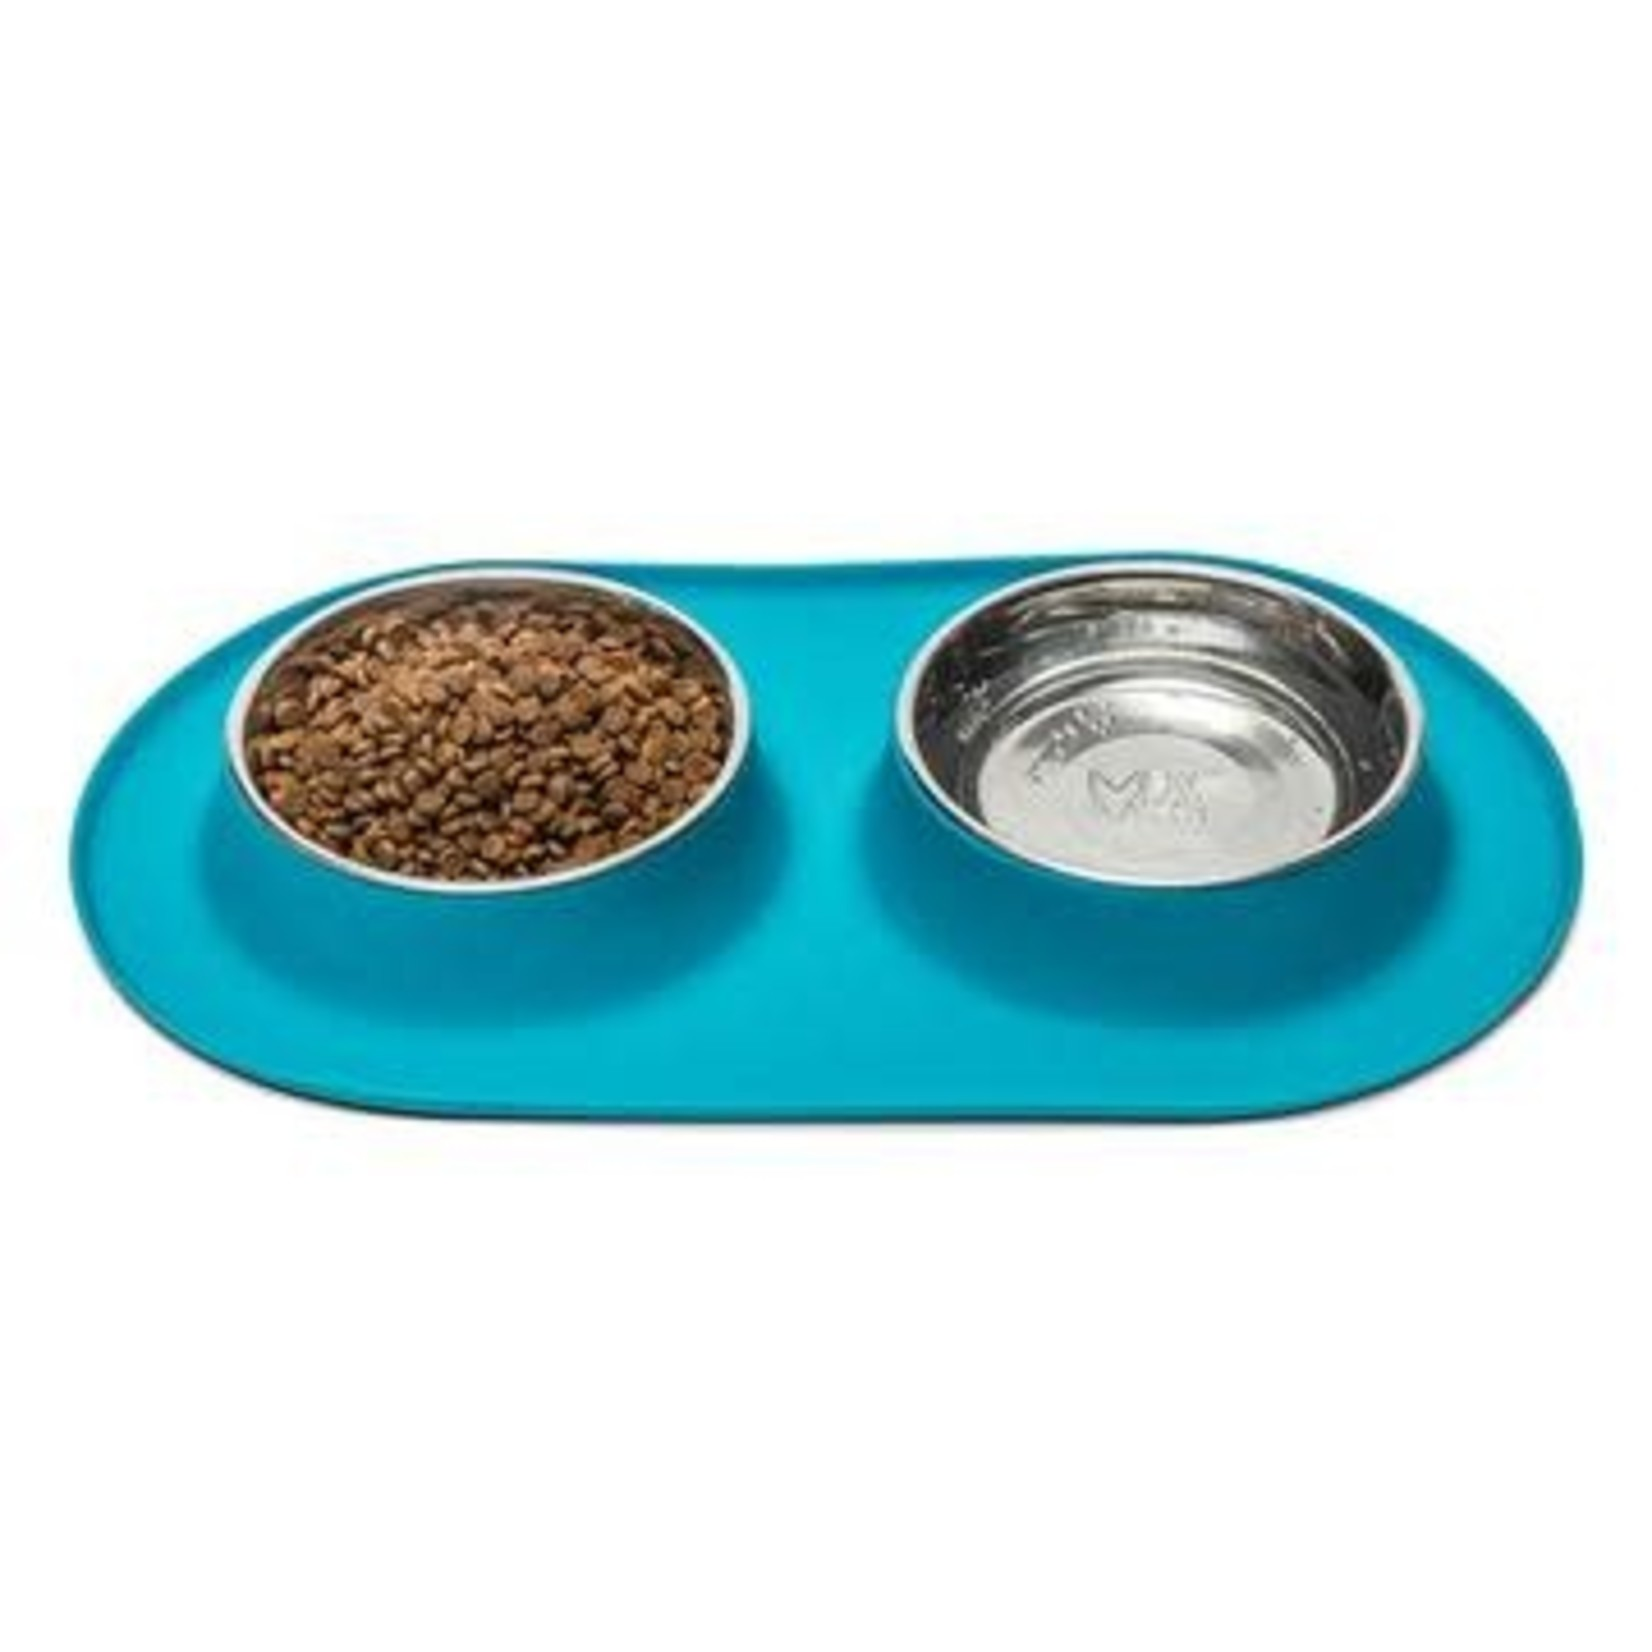 Messy Mutts Messy Mutts Dog Double Silicone Feeder Blue 1.5 CUP